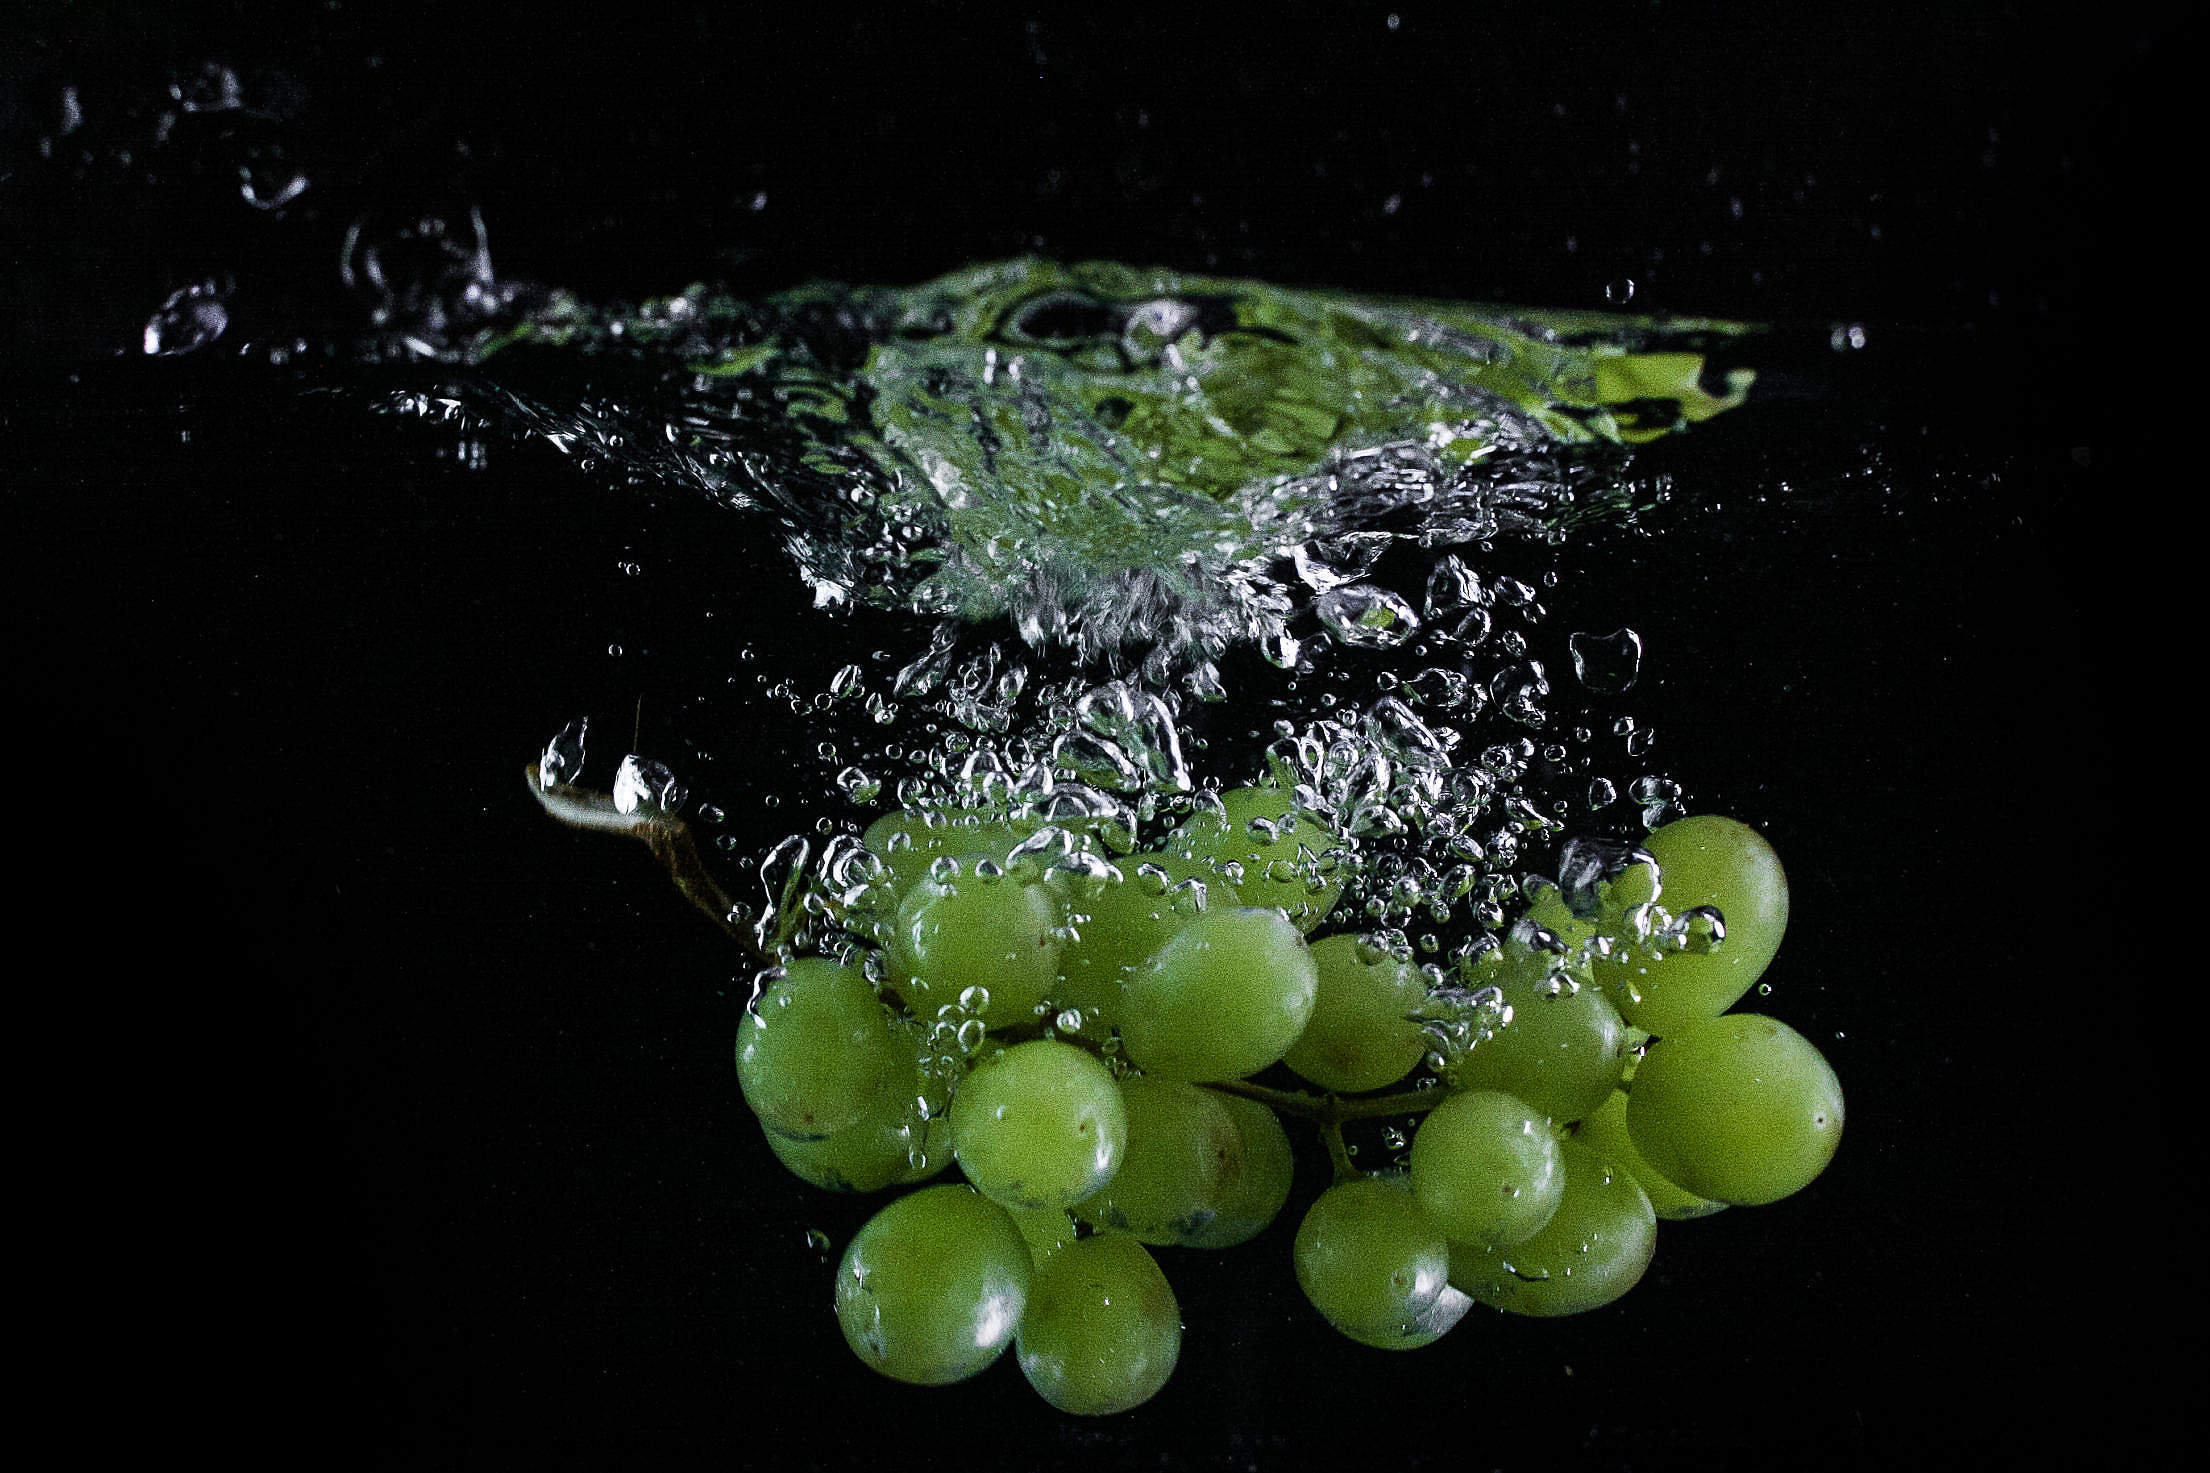 Grapes Thrown in Water Free Stock Photo